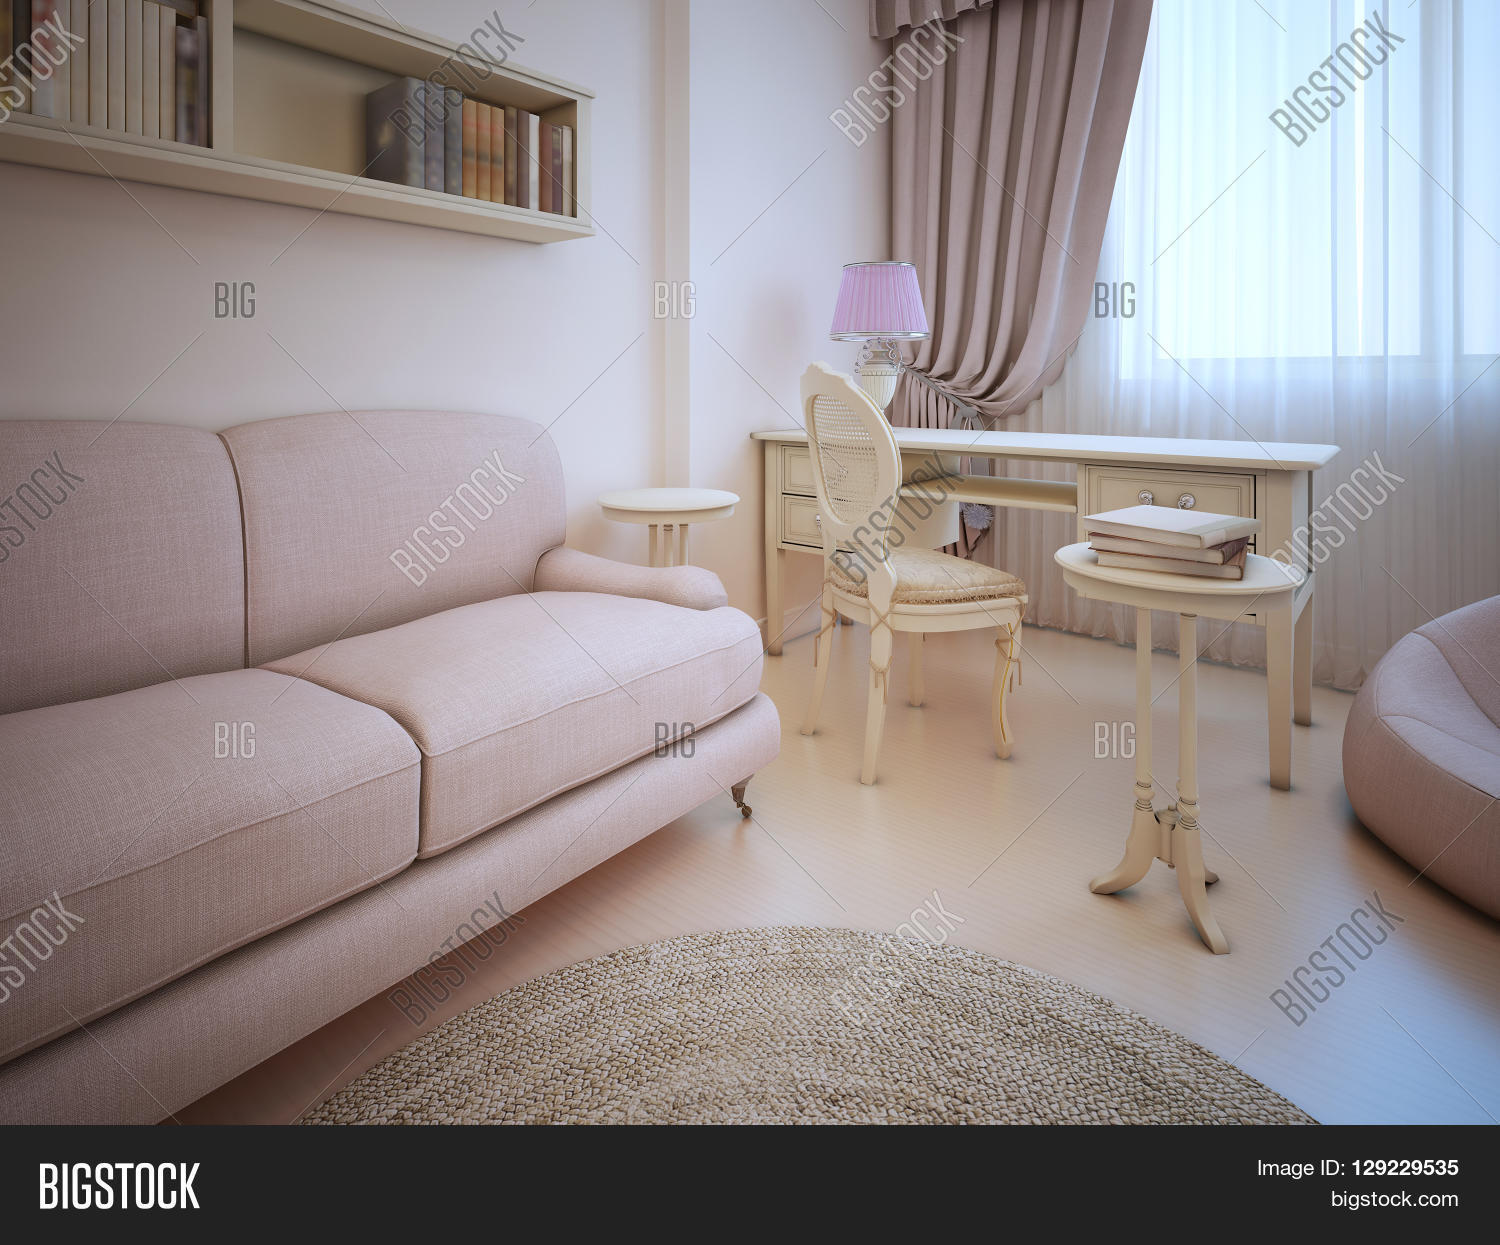 Elegant Living Shabby Chic Style. Sofa And Dressing Table In Room With  Cream Walls